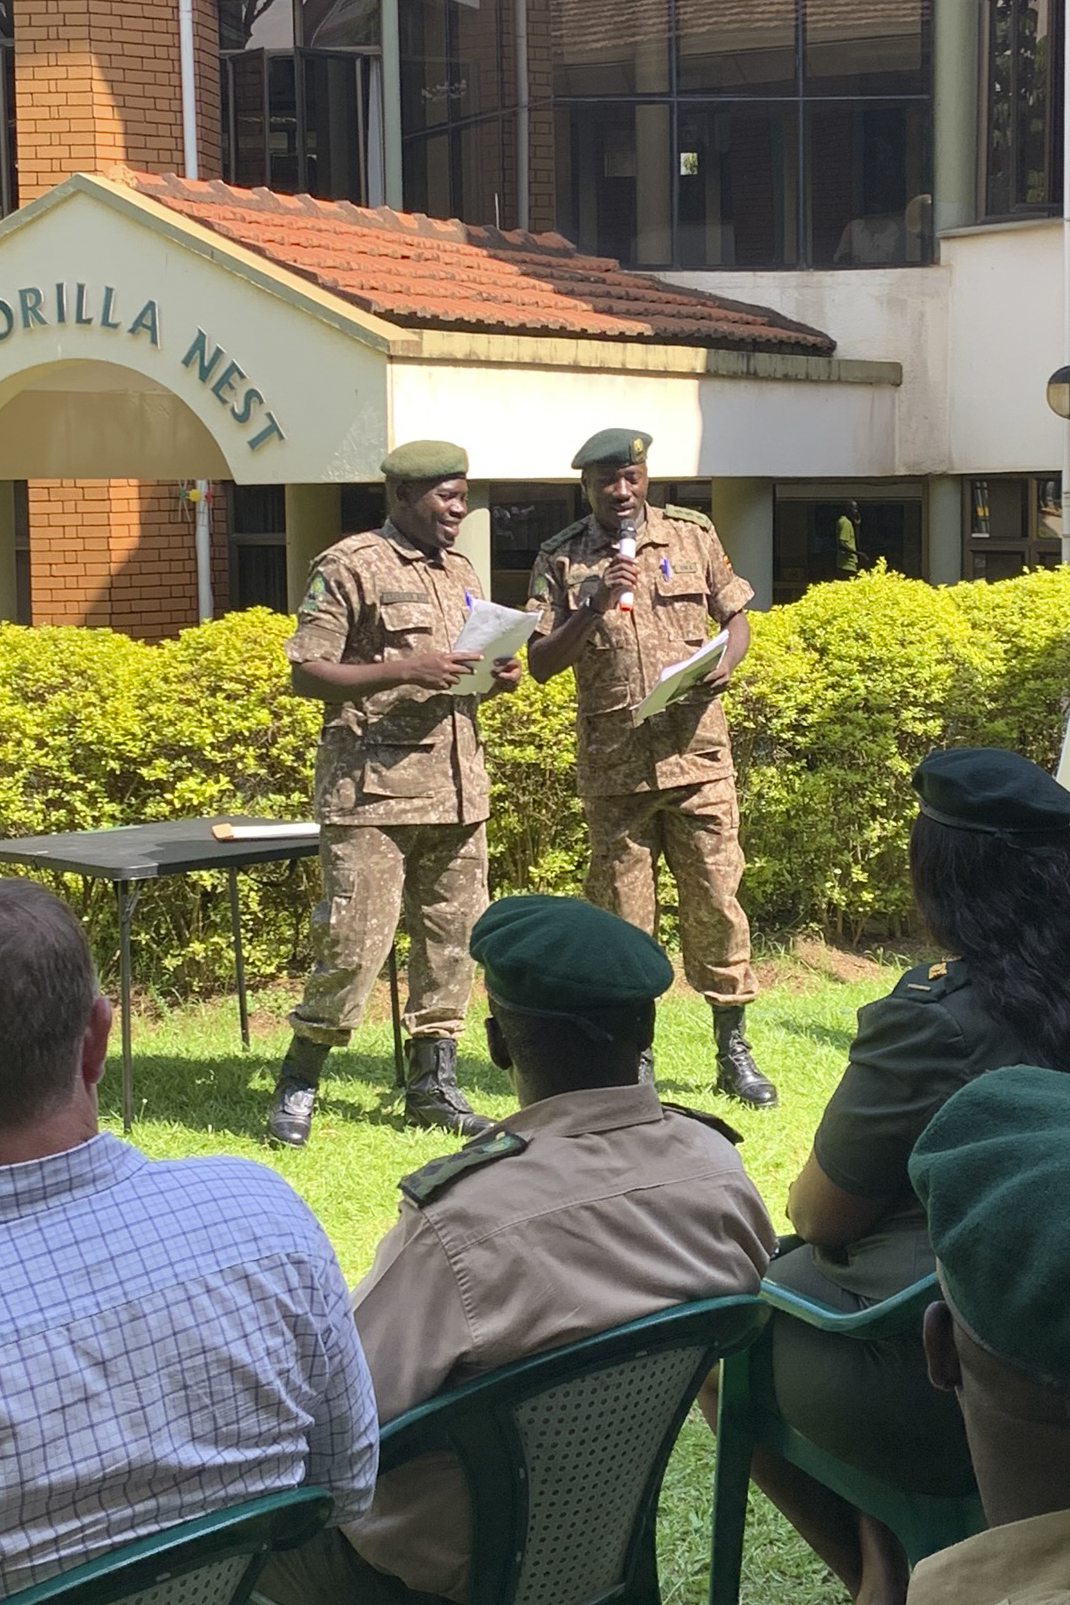 Wardens from the Uganda Wildlife Authority (UWA) lead a discussion about the Combined Joint Task Force-Horn of Africa 411th Civil Affairs (CA) Pilot Senior Leader Program (PSLP) during the graduation ceremony at Kampala, Uganda, March 6, 2020. PSLP was a week-long course to familiarize wardens with the course material 100 of their junior rangers learned as a part of the recurring UWA Junior Leadership Program taught by CA and a manifestation of the ongoing partnership between the United States and Uganda. (U.S. Air Force photo by Senior Airman Gage Daniel)